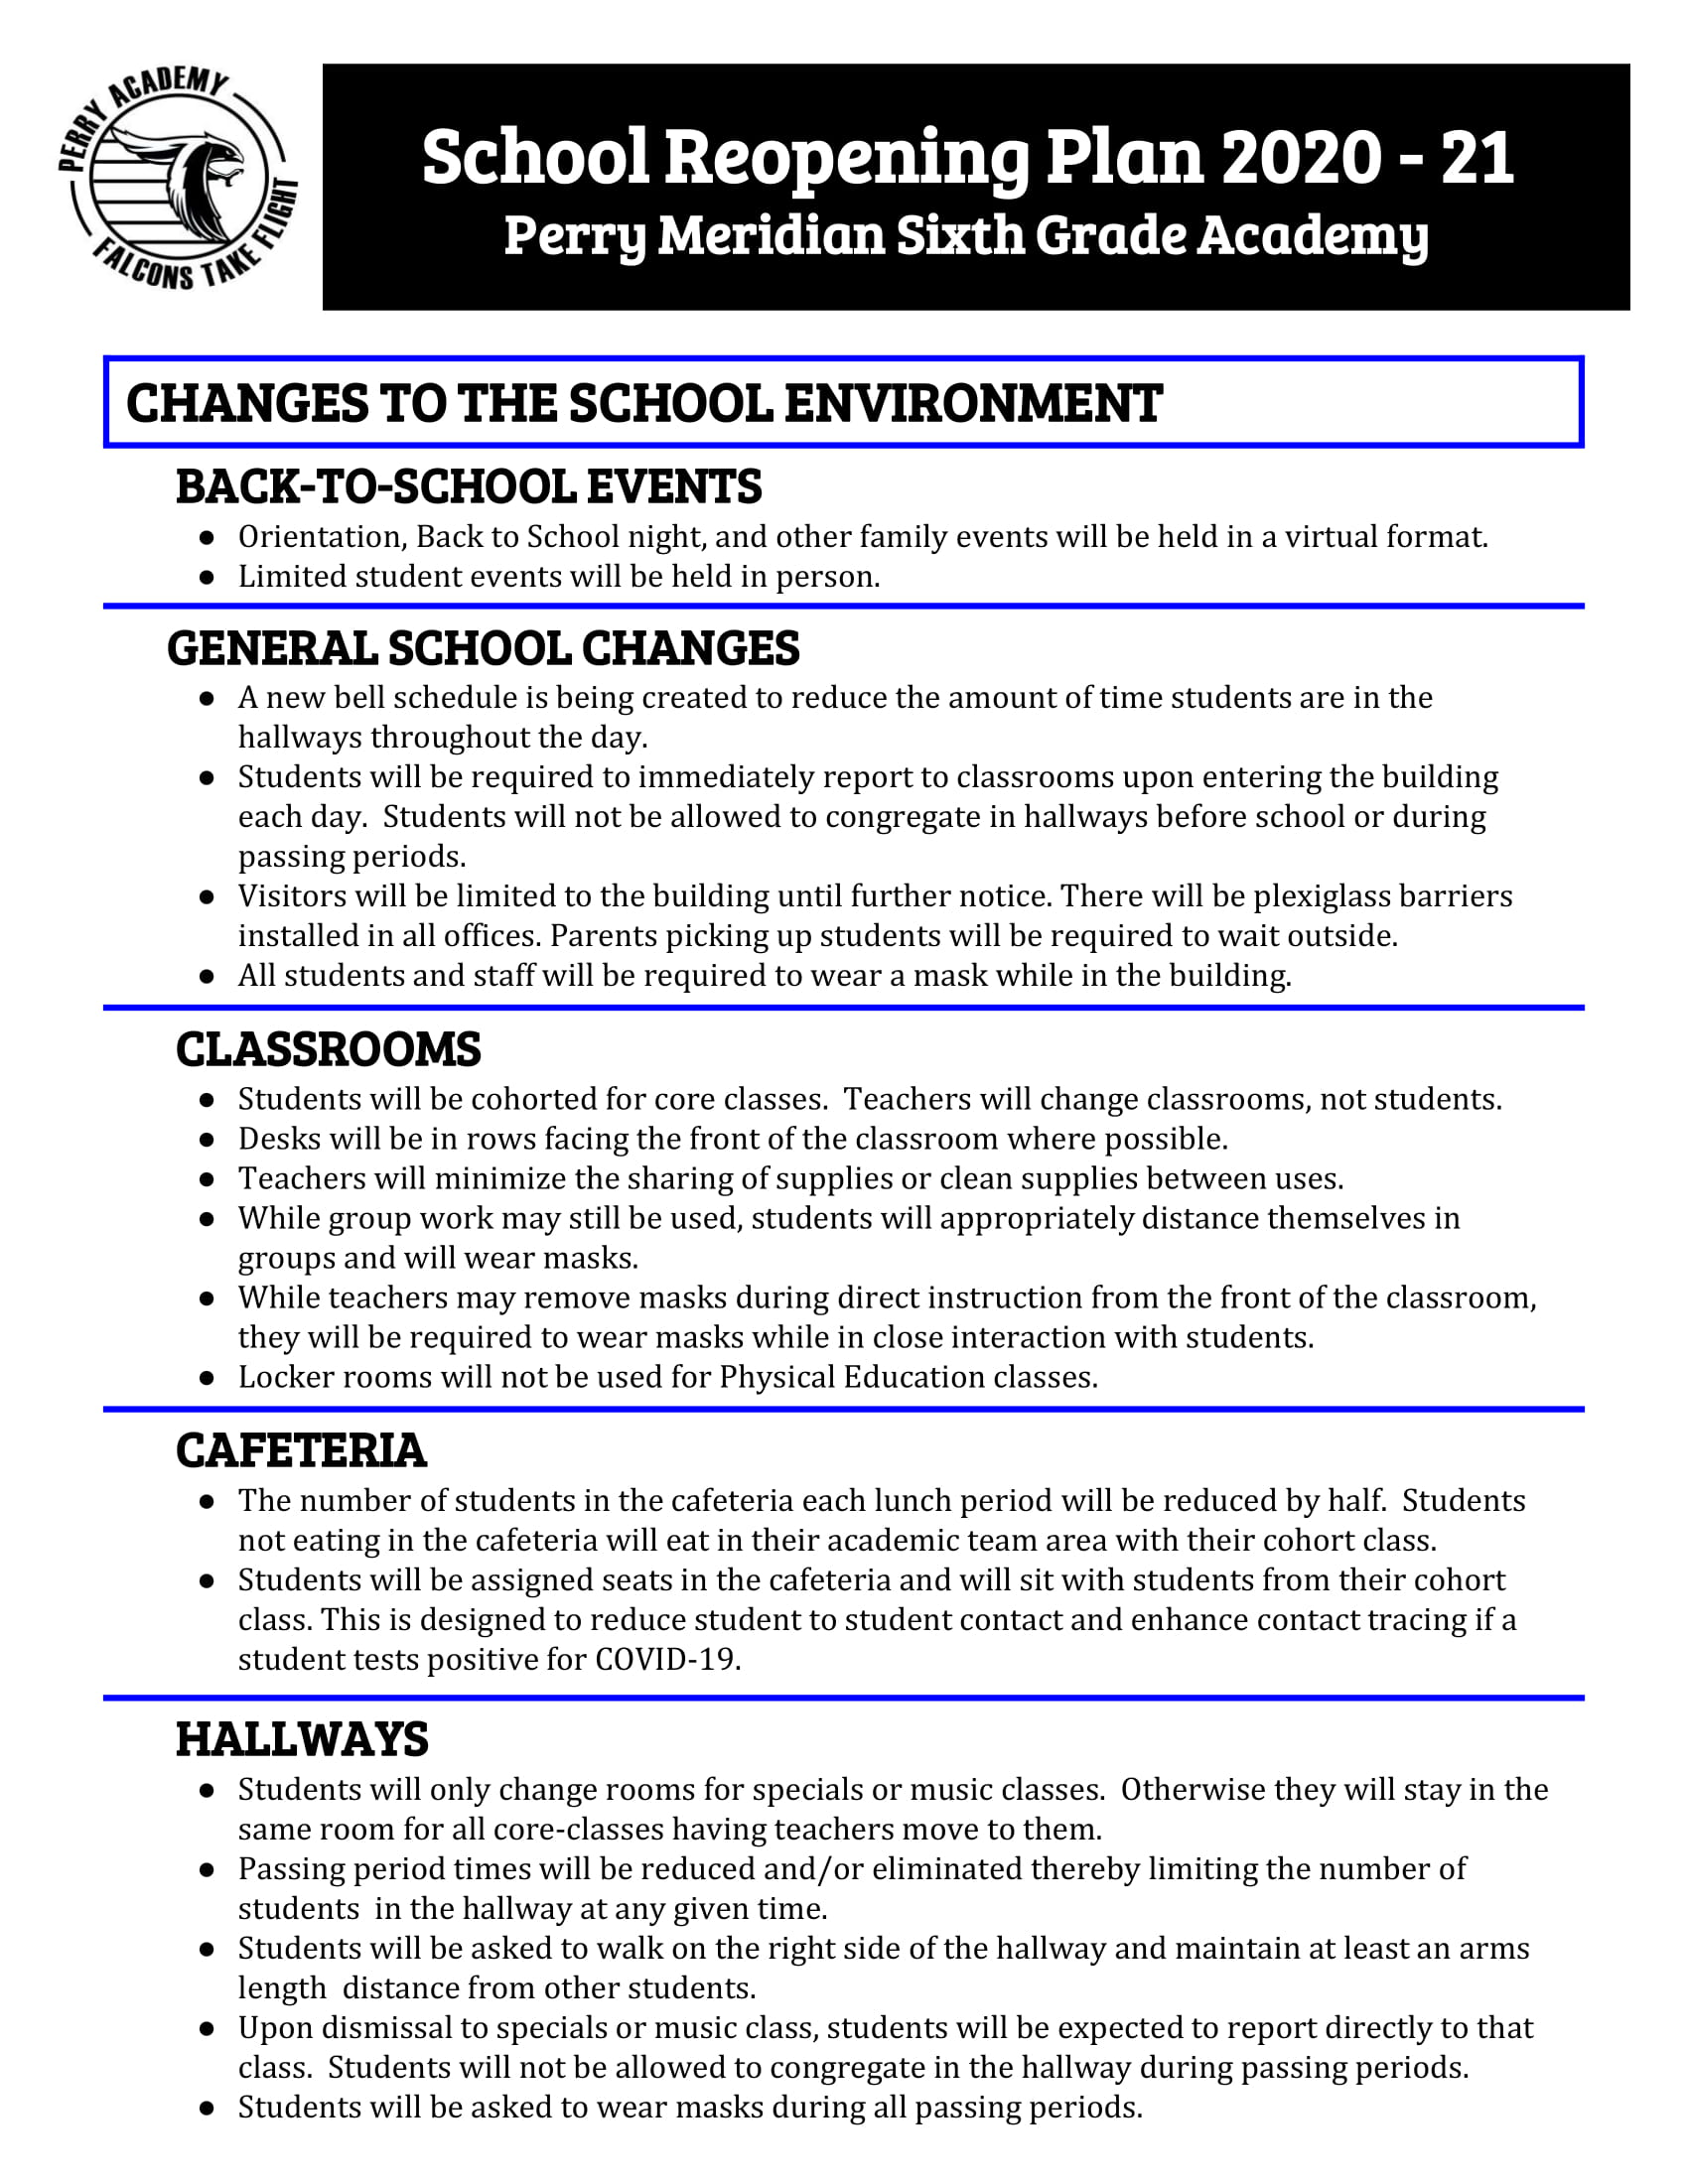 Classroom Reopening Plan | Perry Meridian 6th Grade Academy